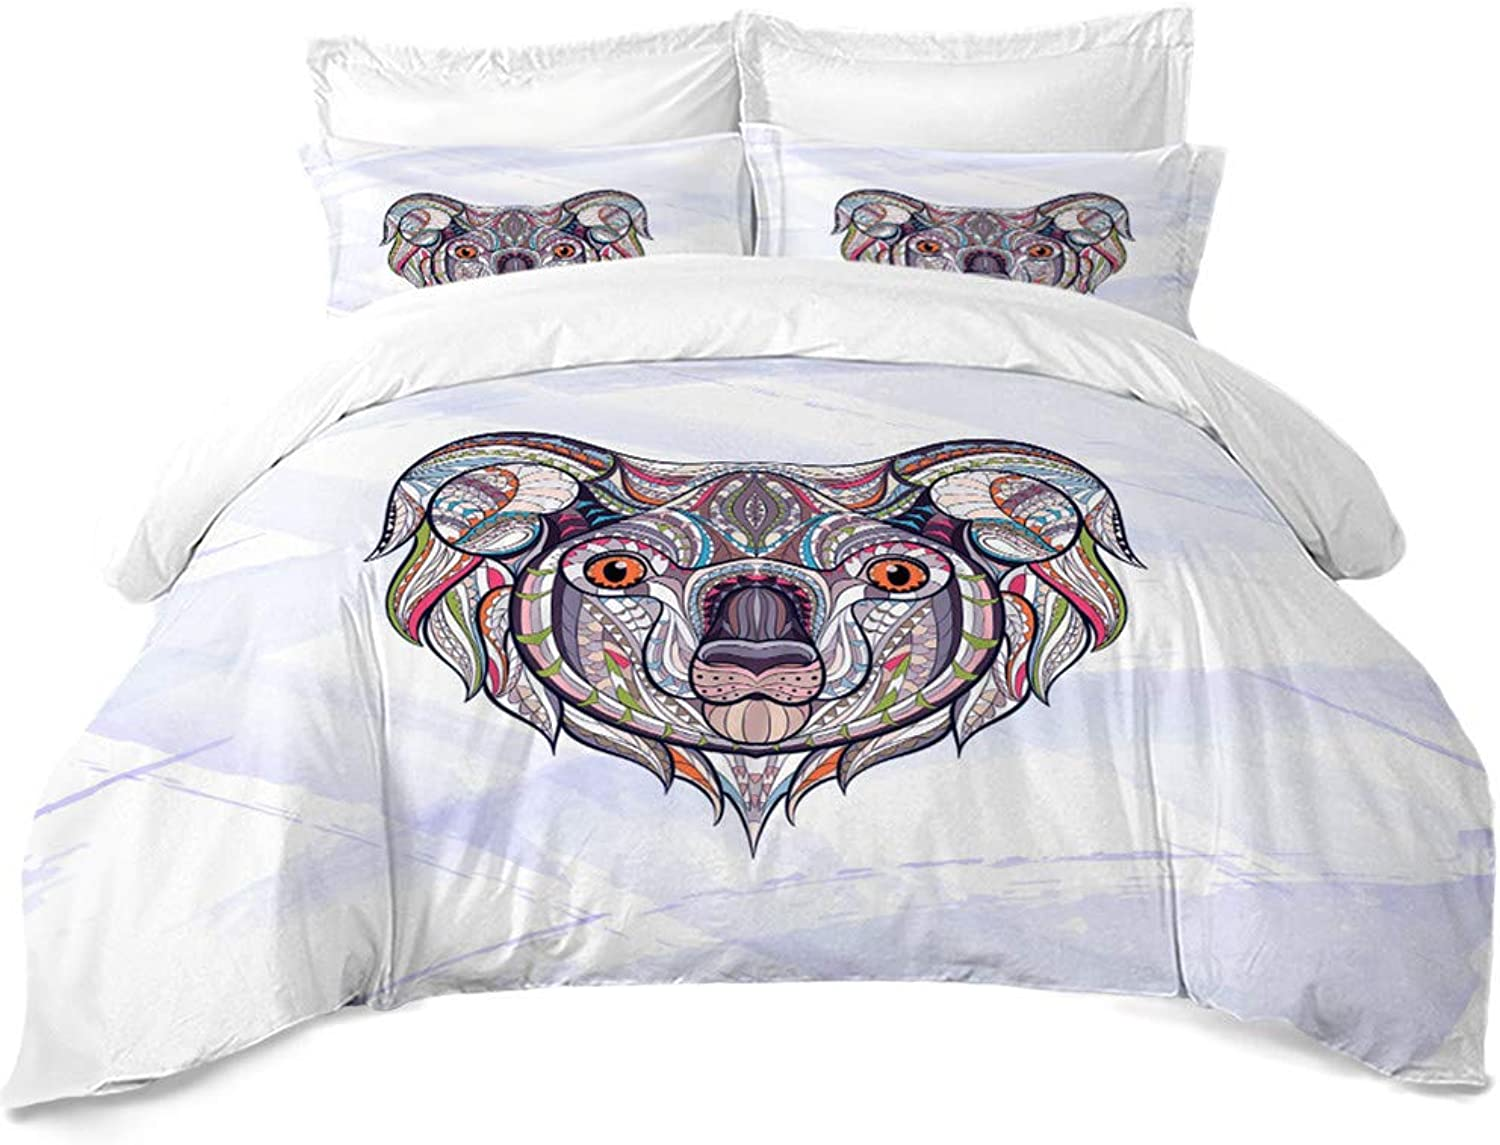 Brushed Microfiber Duvet Cover Set  colorful Animal Cute Koala Print Series Bedding Set 3 Piece (1 Quilt Cover + 2 Pillow Shams), Hypoallergenic, Wrinkle, Moisture and Dust Mites Resistant